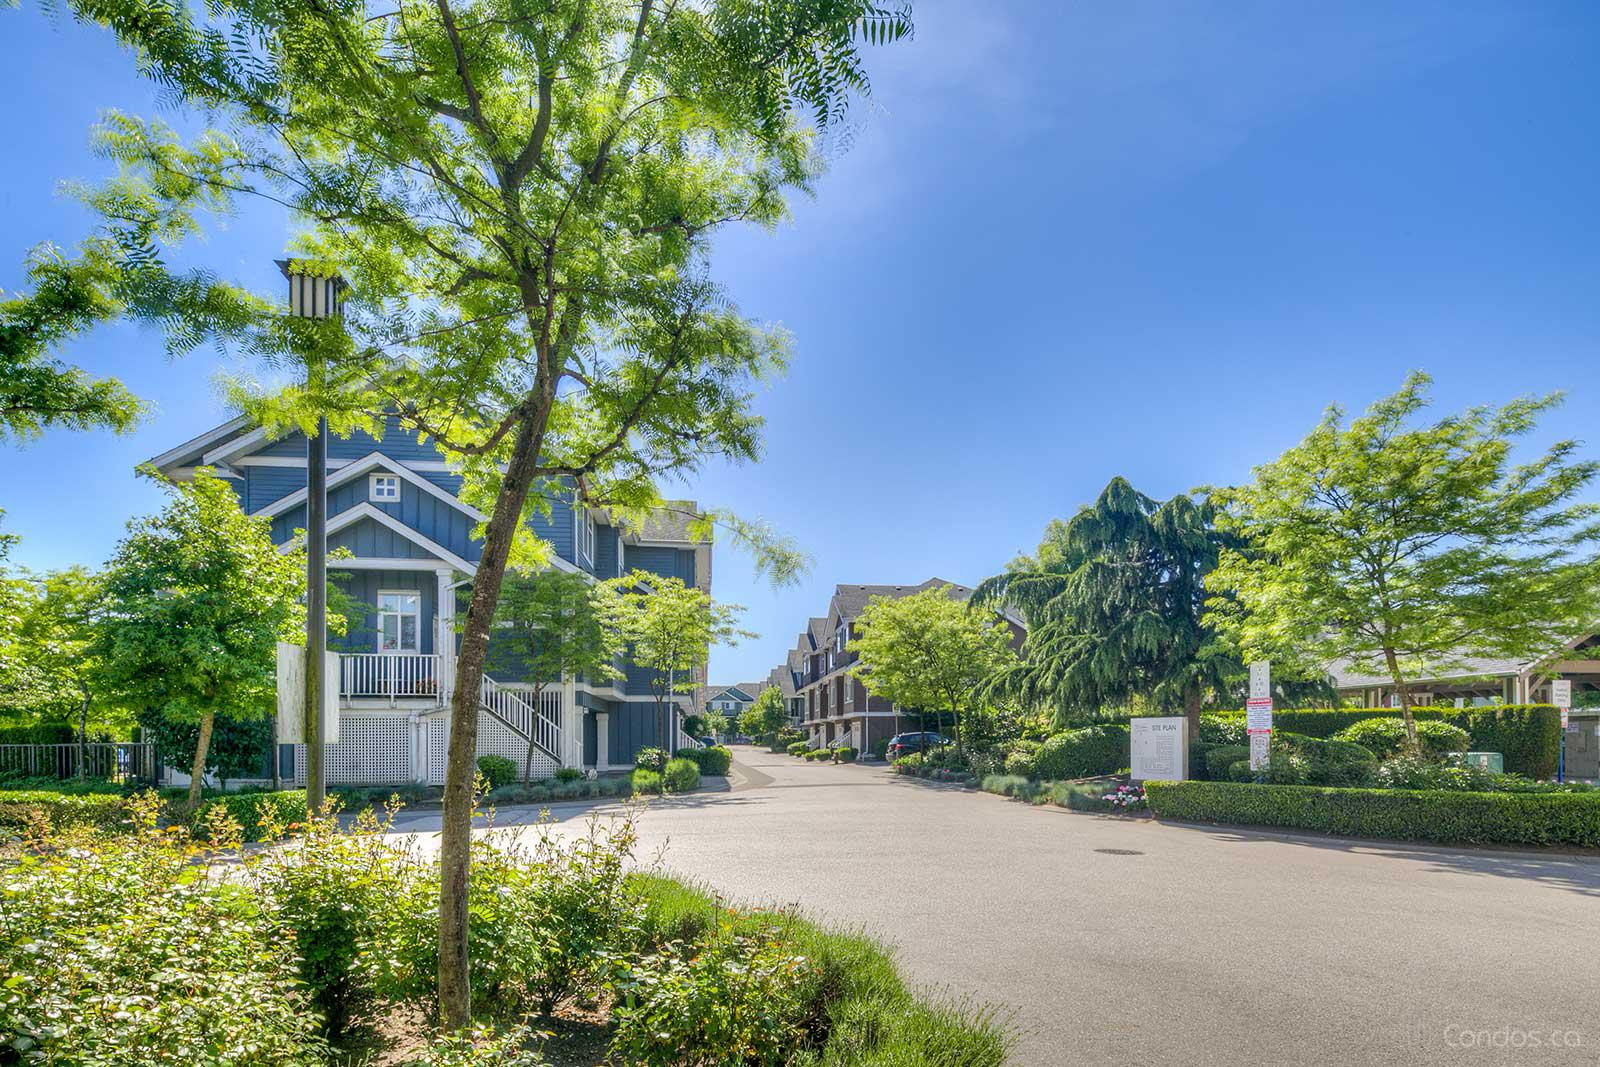 Coopers Landing at 935 Ewen Ave, New Westminster 1